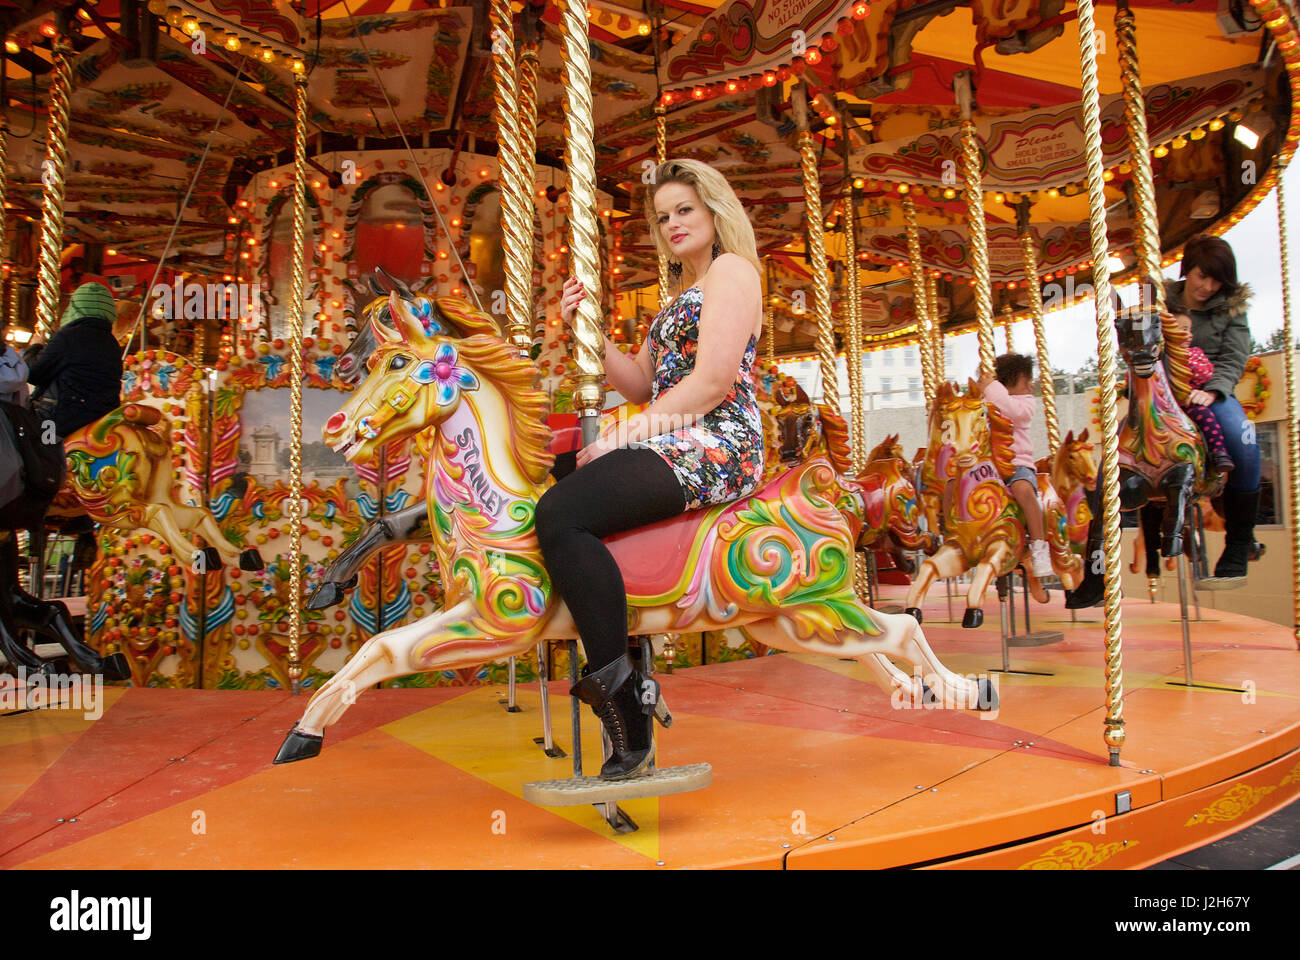 Beautiful blonde on a merry-go-round horse at a fun fair - Stock Image